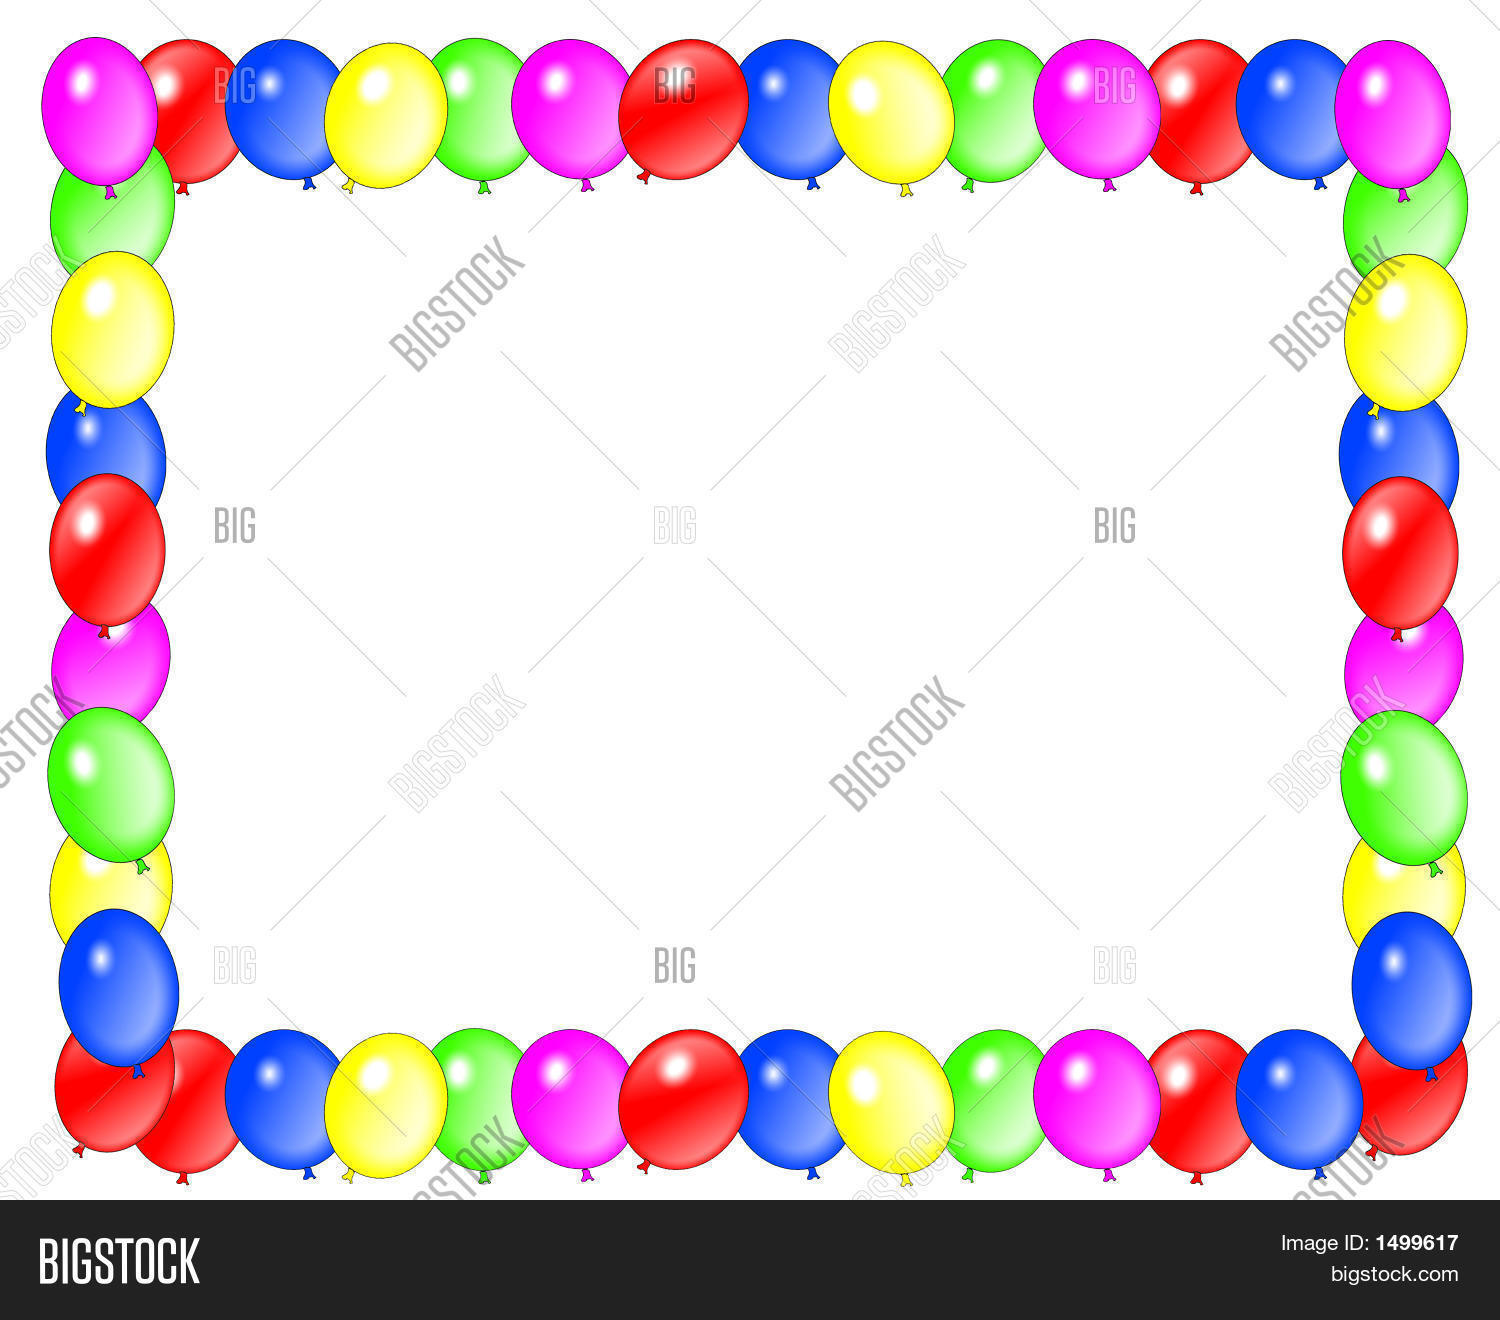 Party Balloon Frame Horizontal Stock Photo & Stock Images ...